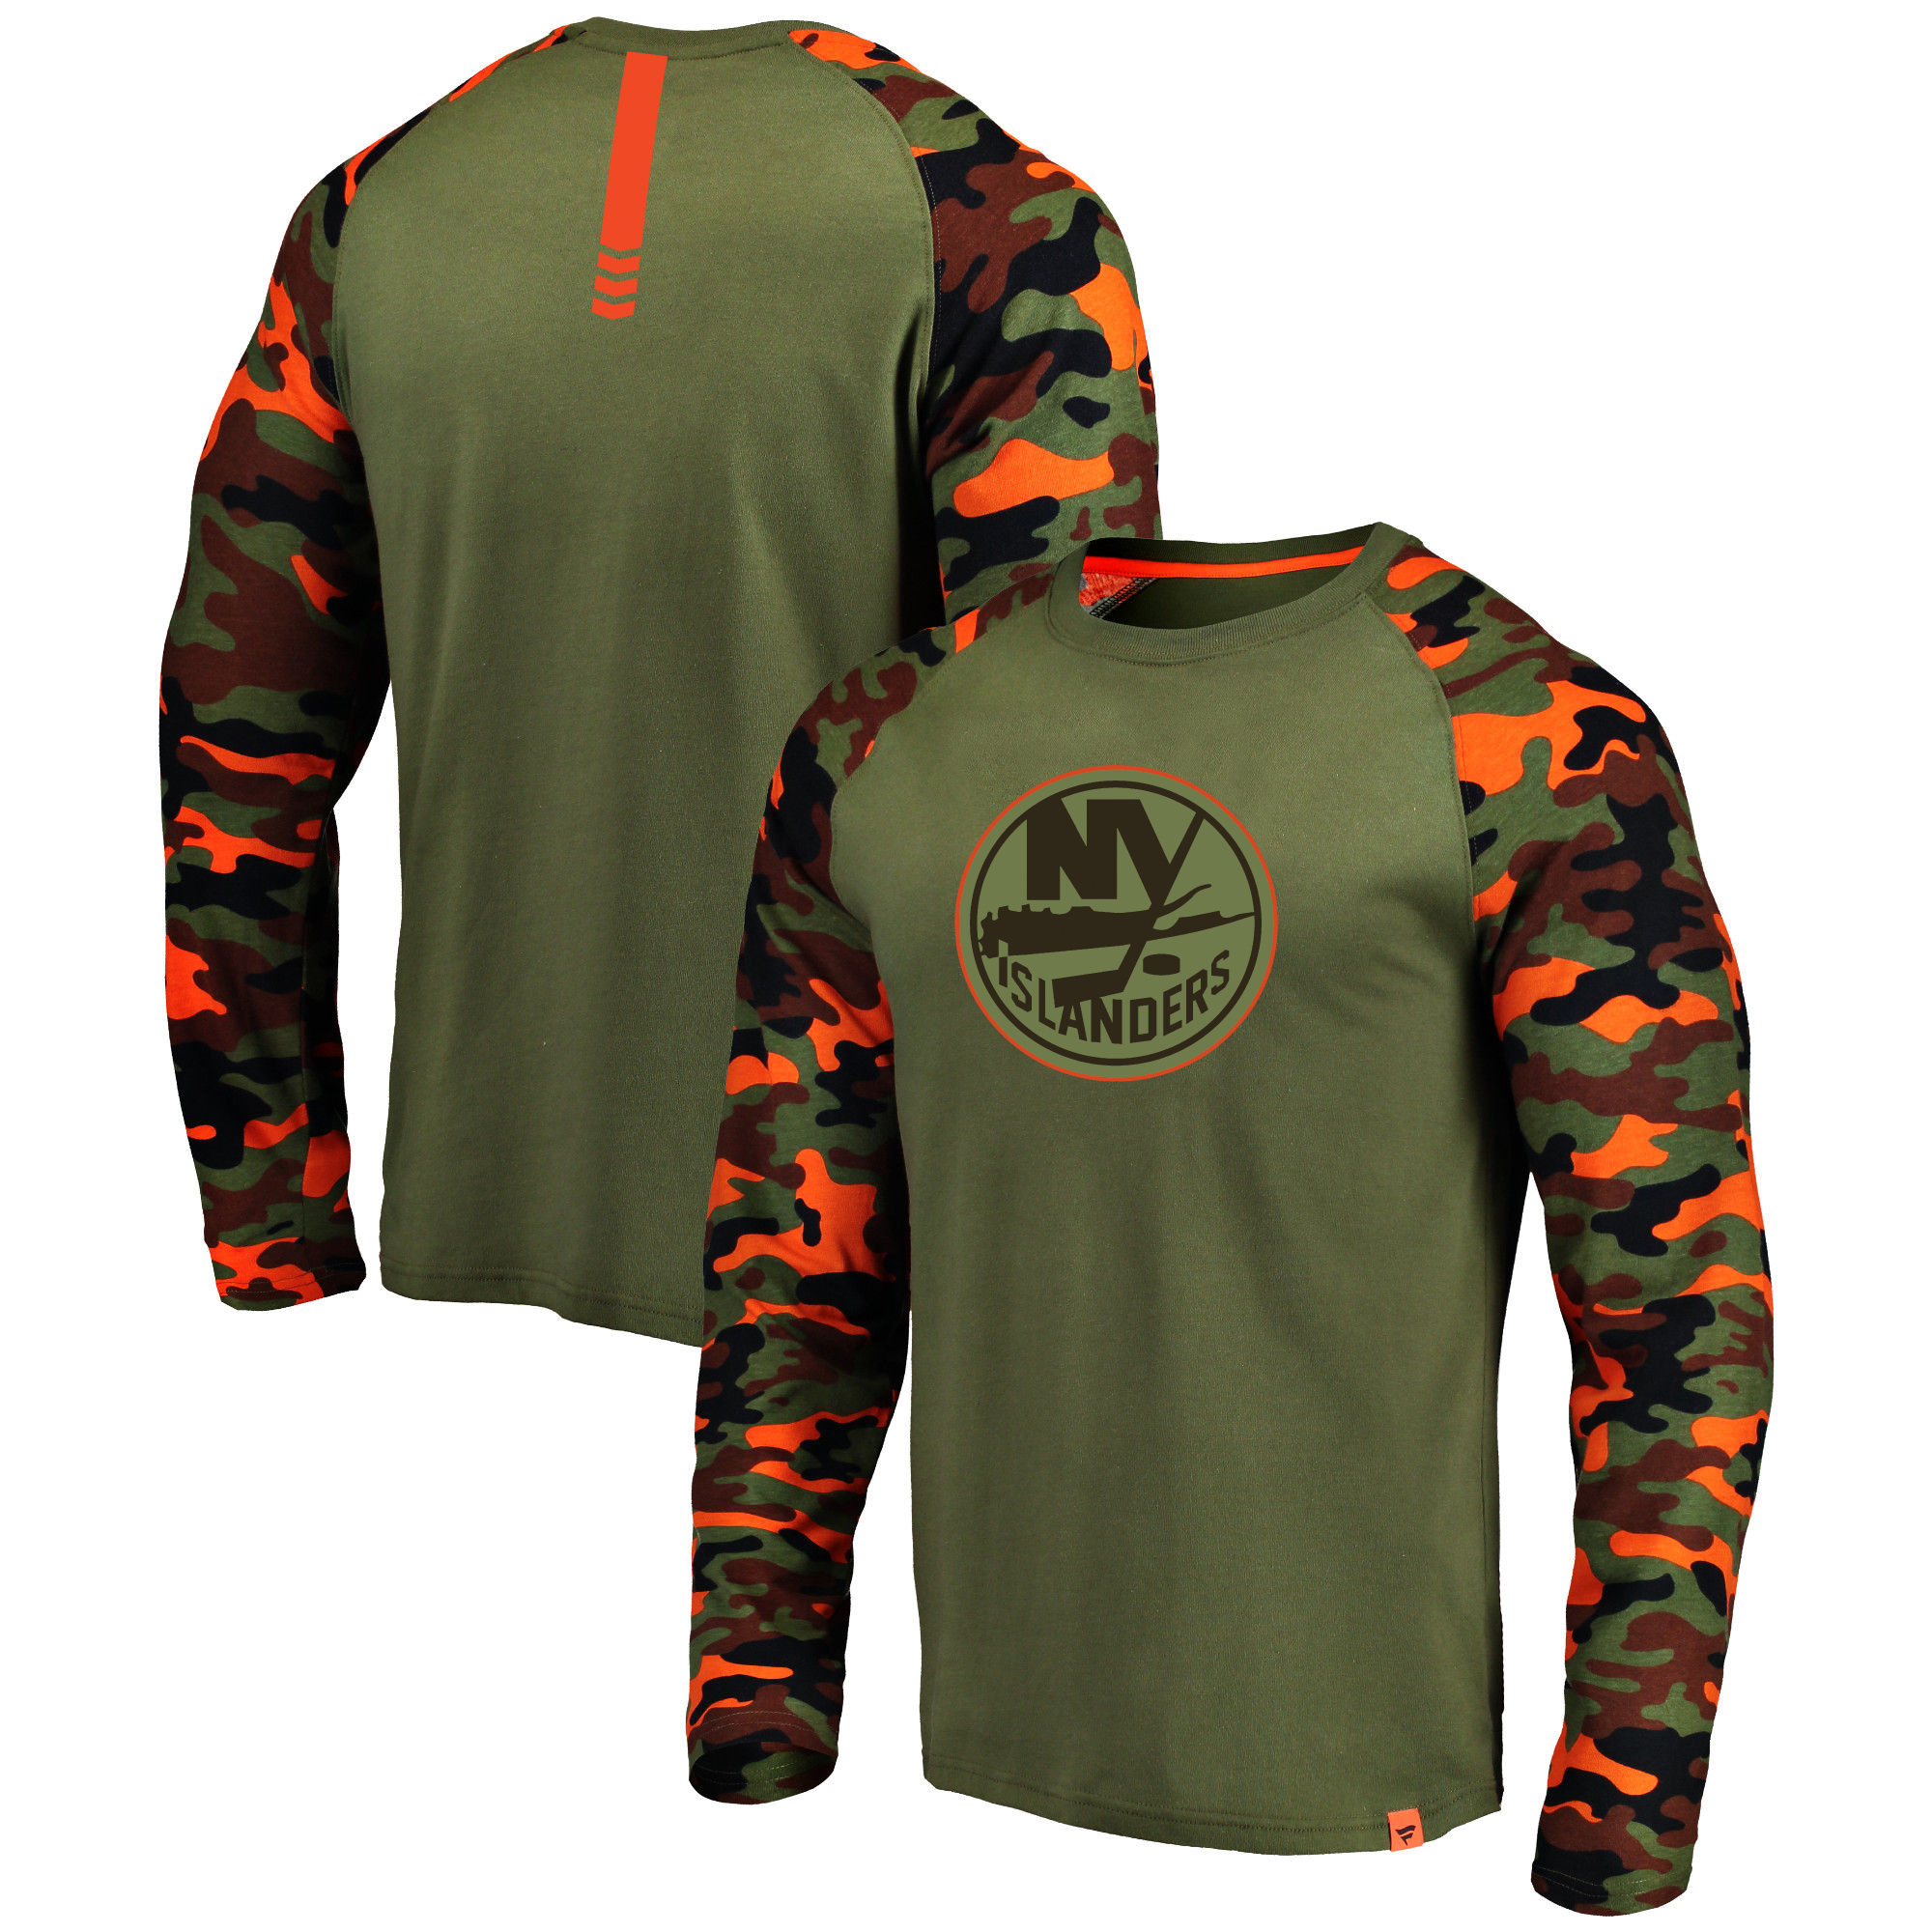 New York Islanders Fanatics Branded Olive/Camo Recon Long Sleeve Raglan T-Shirt